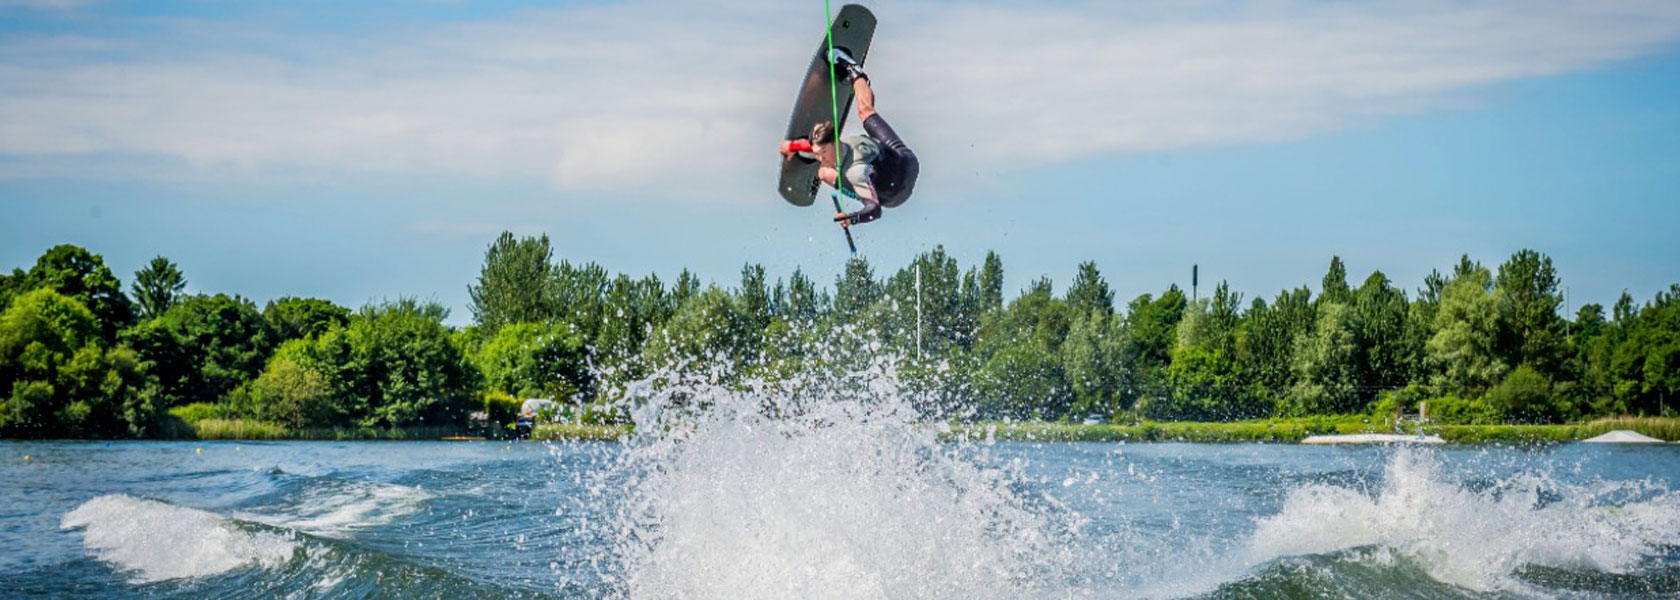 Mitch-Wise-Wakeboarder---Hero Banner